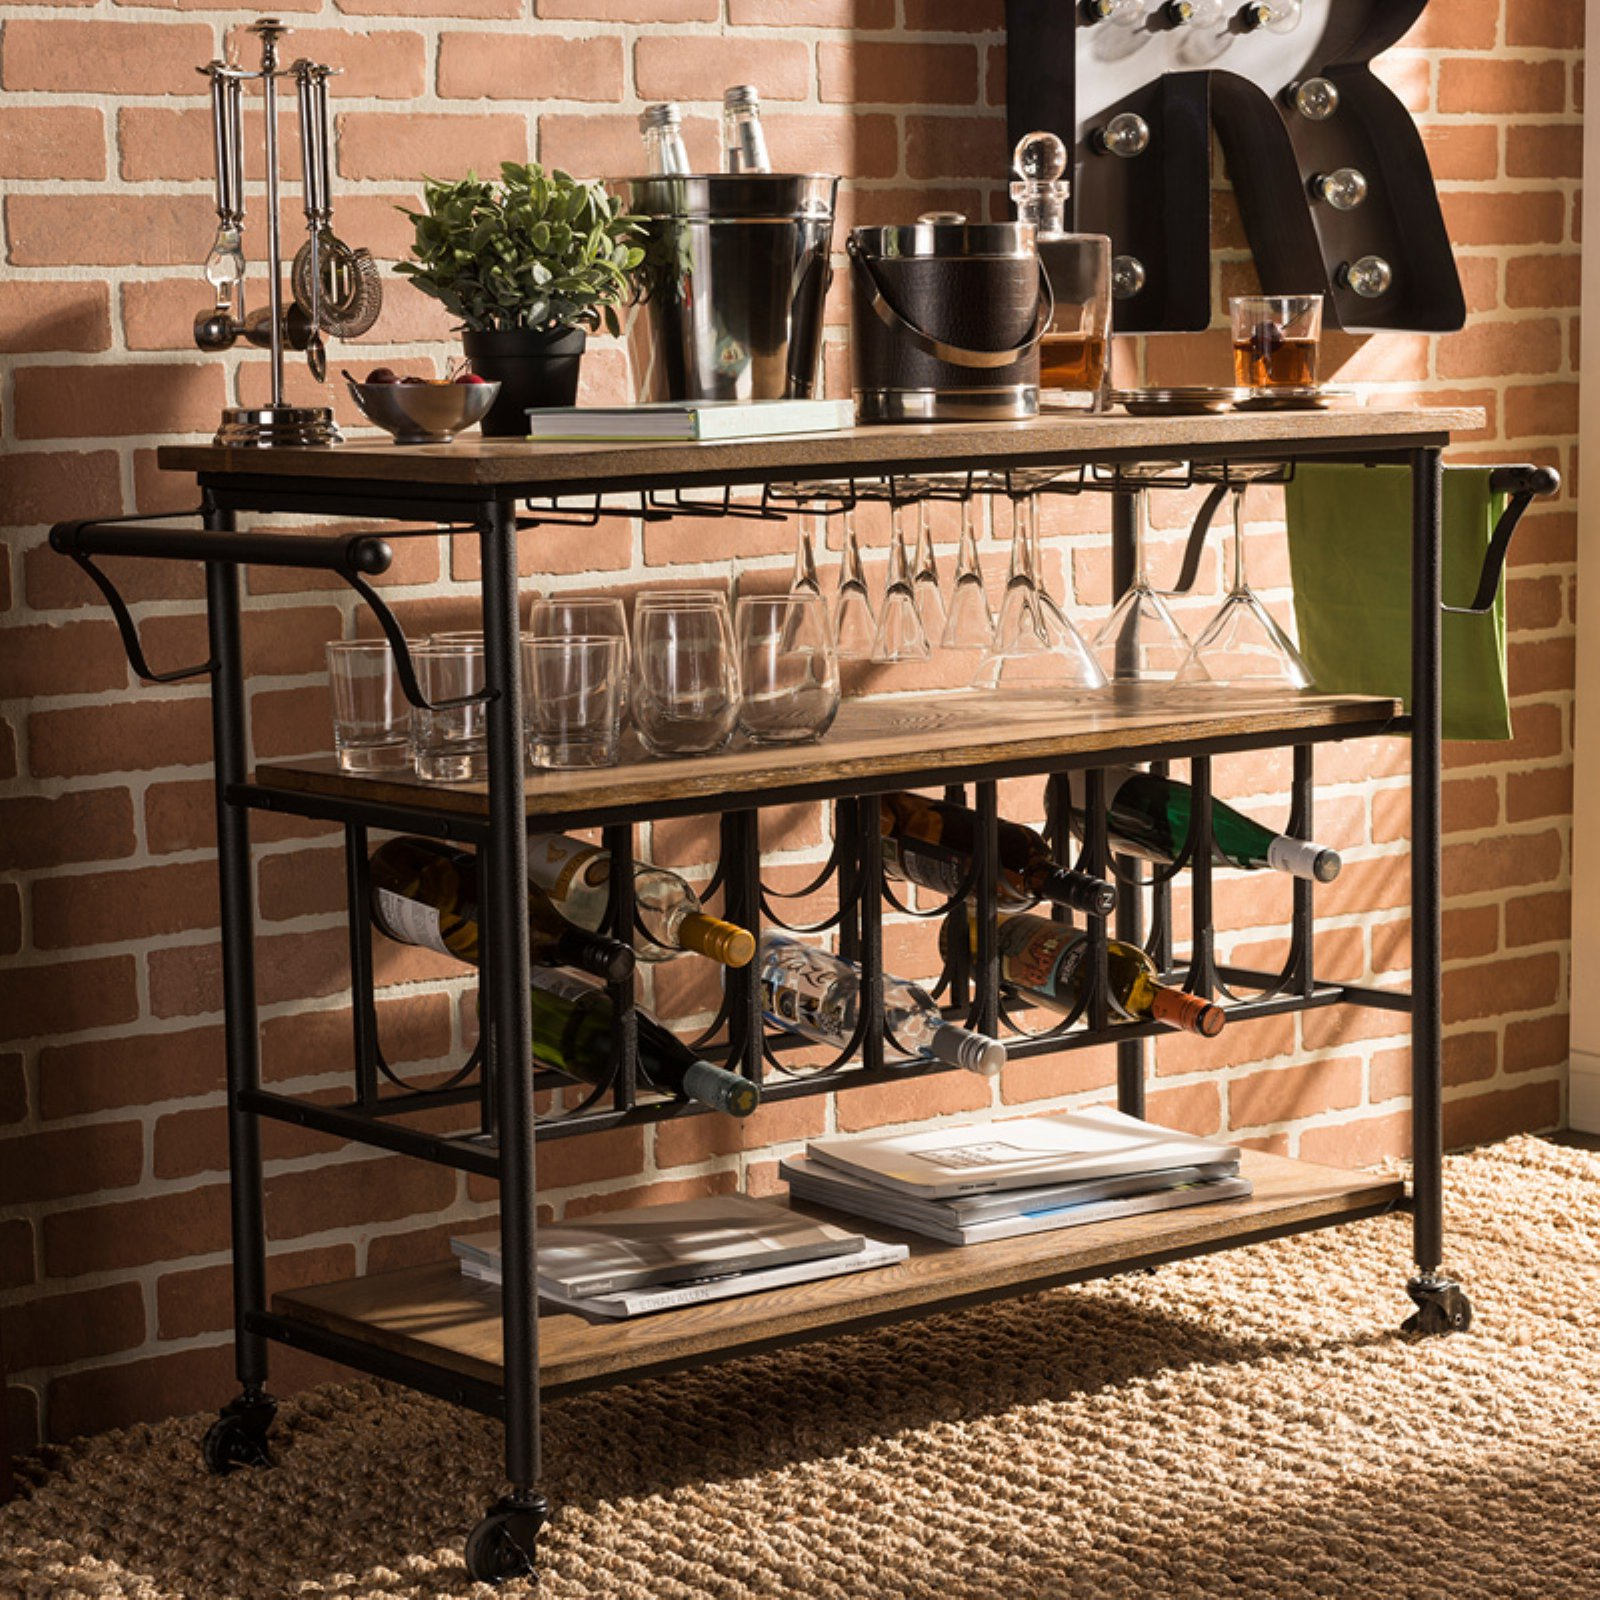 Baxton Studio Bradford Rustic Industrial Kitchen Serving Cart